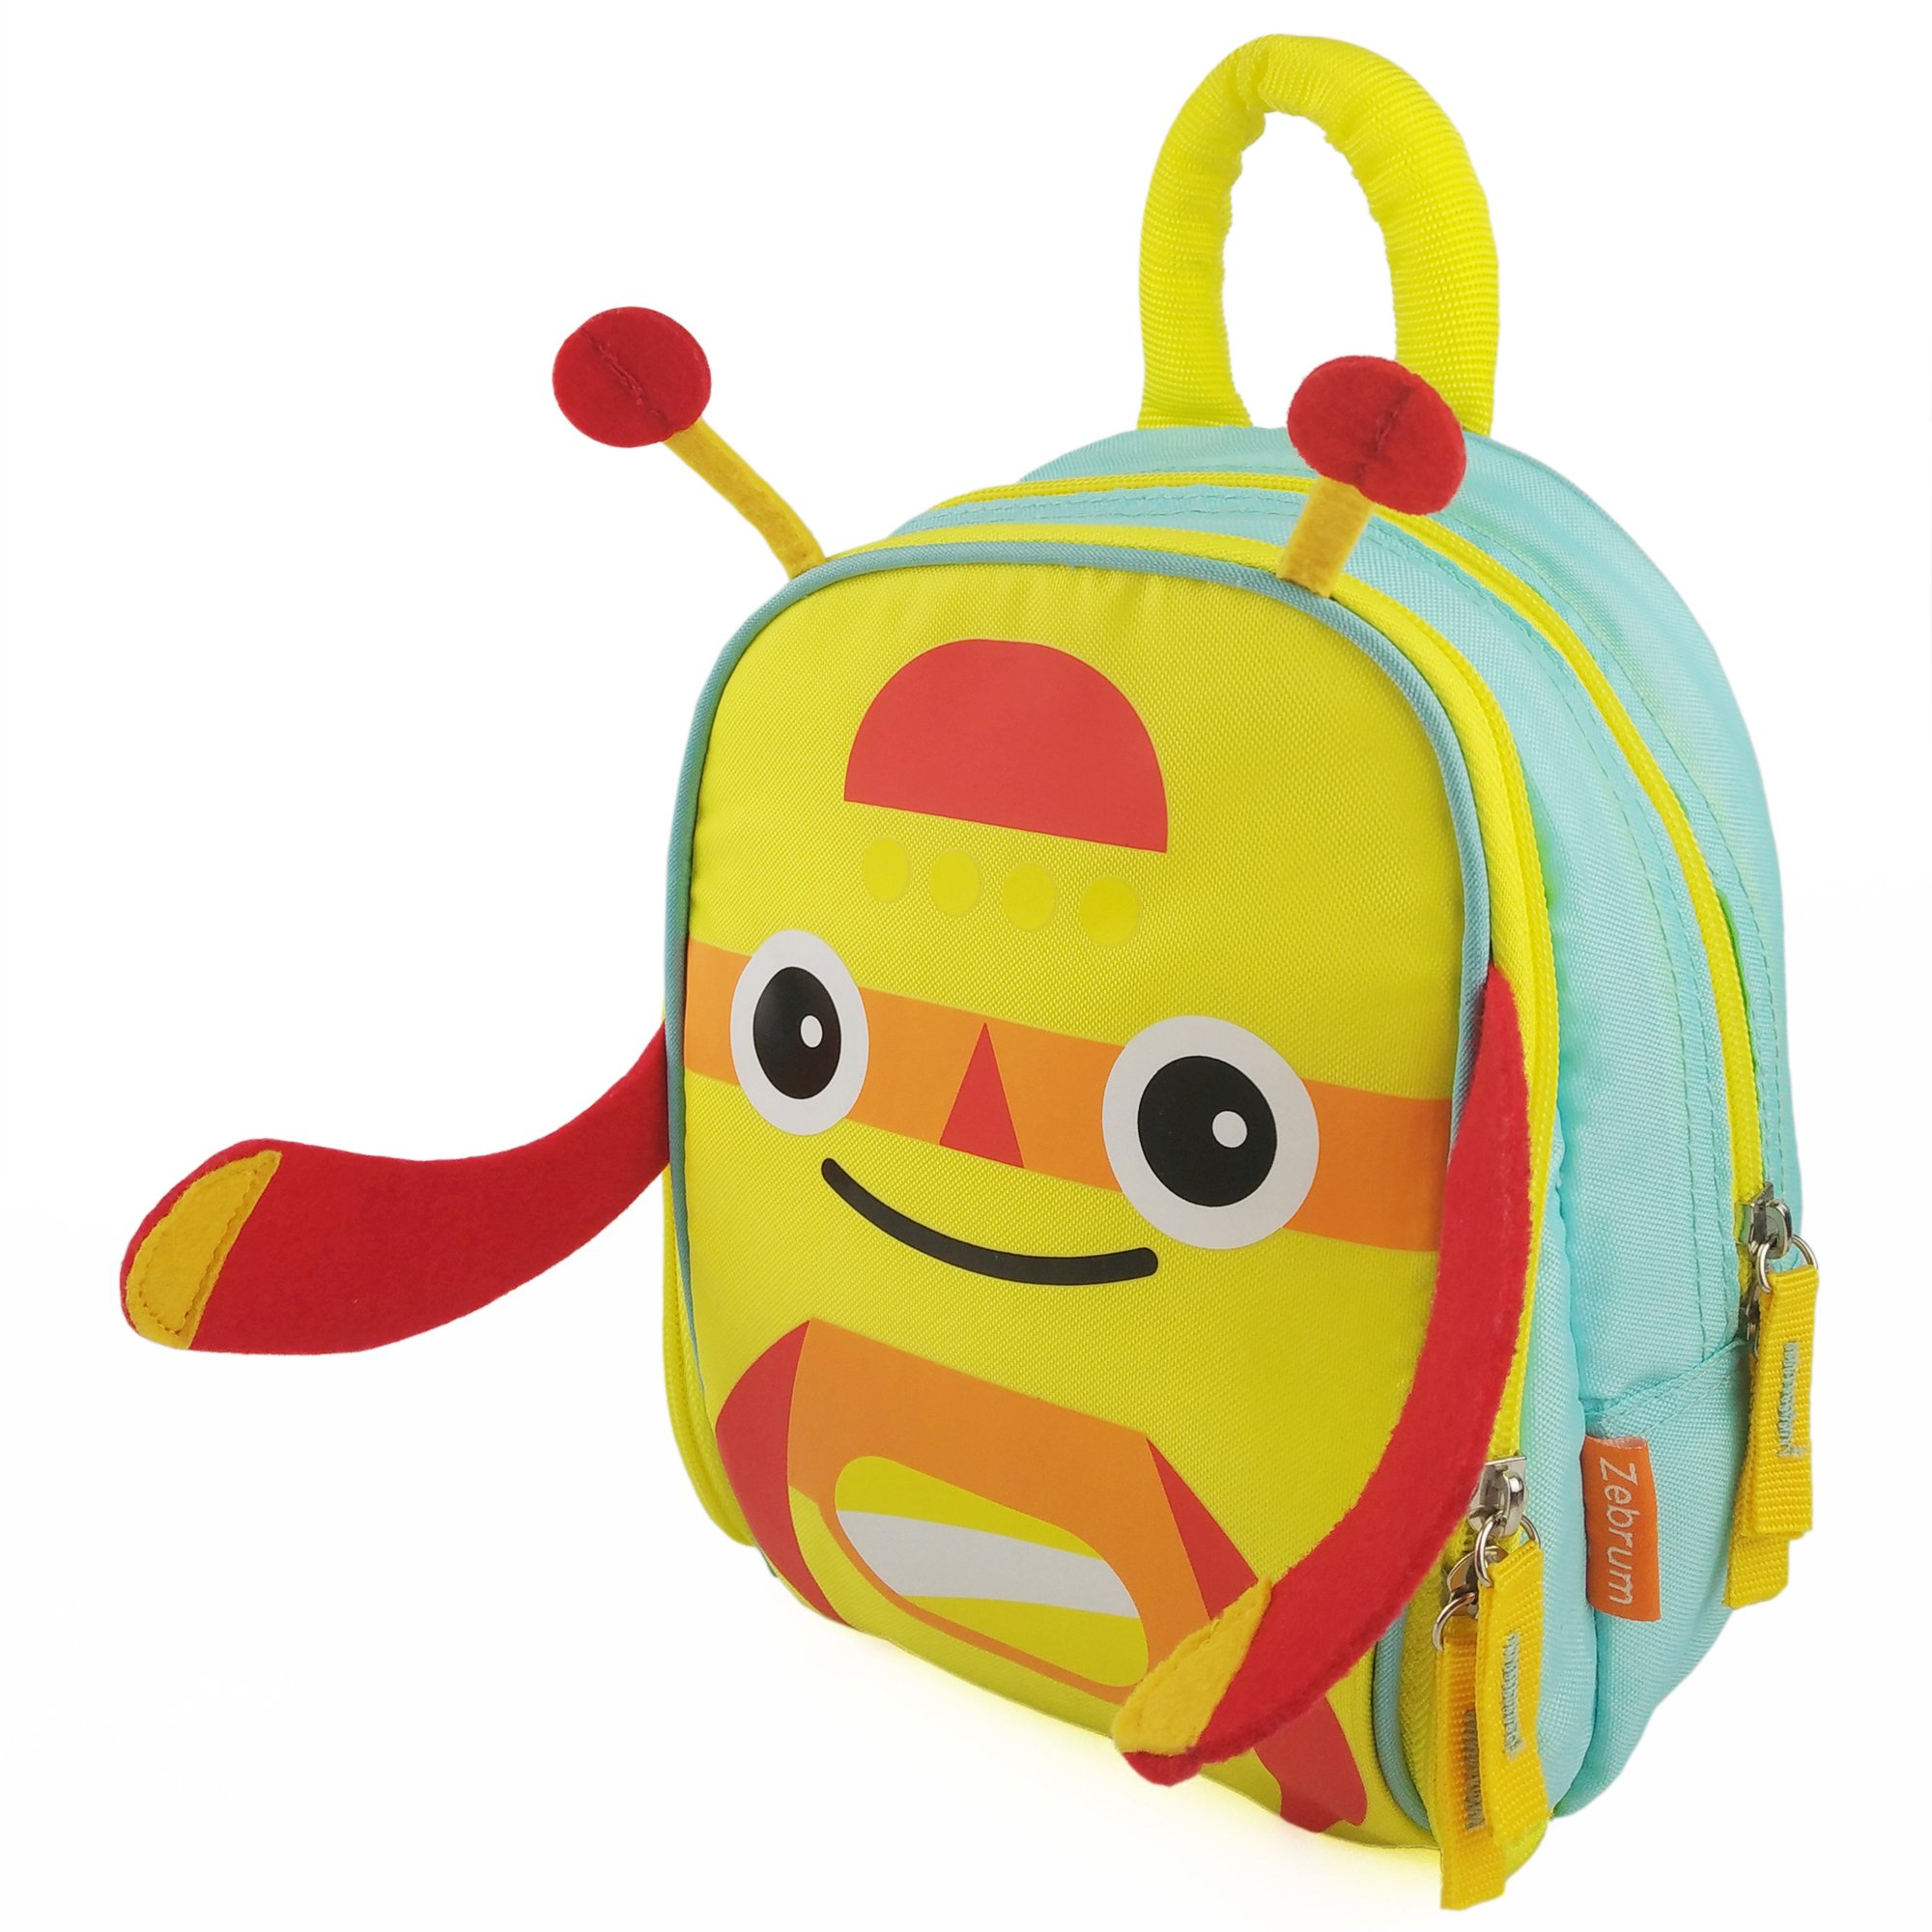 Zebrum Insulated Kids Lunch Box for School Boys &Girls with Dual Compartments, Colorful Spring/Summer Kindergarten Kids Lunch Bag, Cute Cartoon Monster by Zebrum (Yellow)